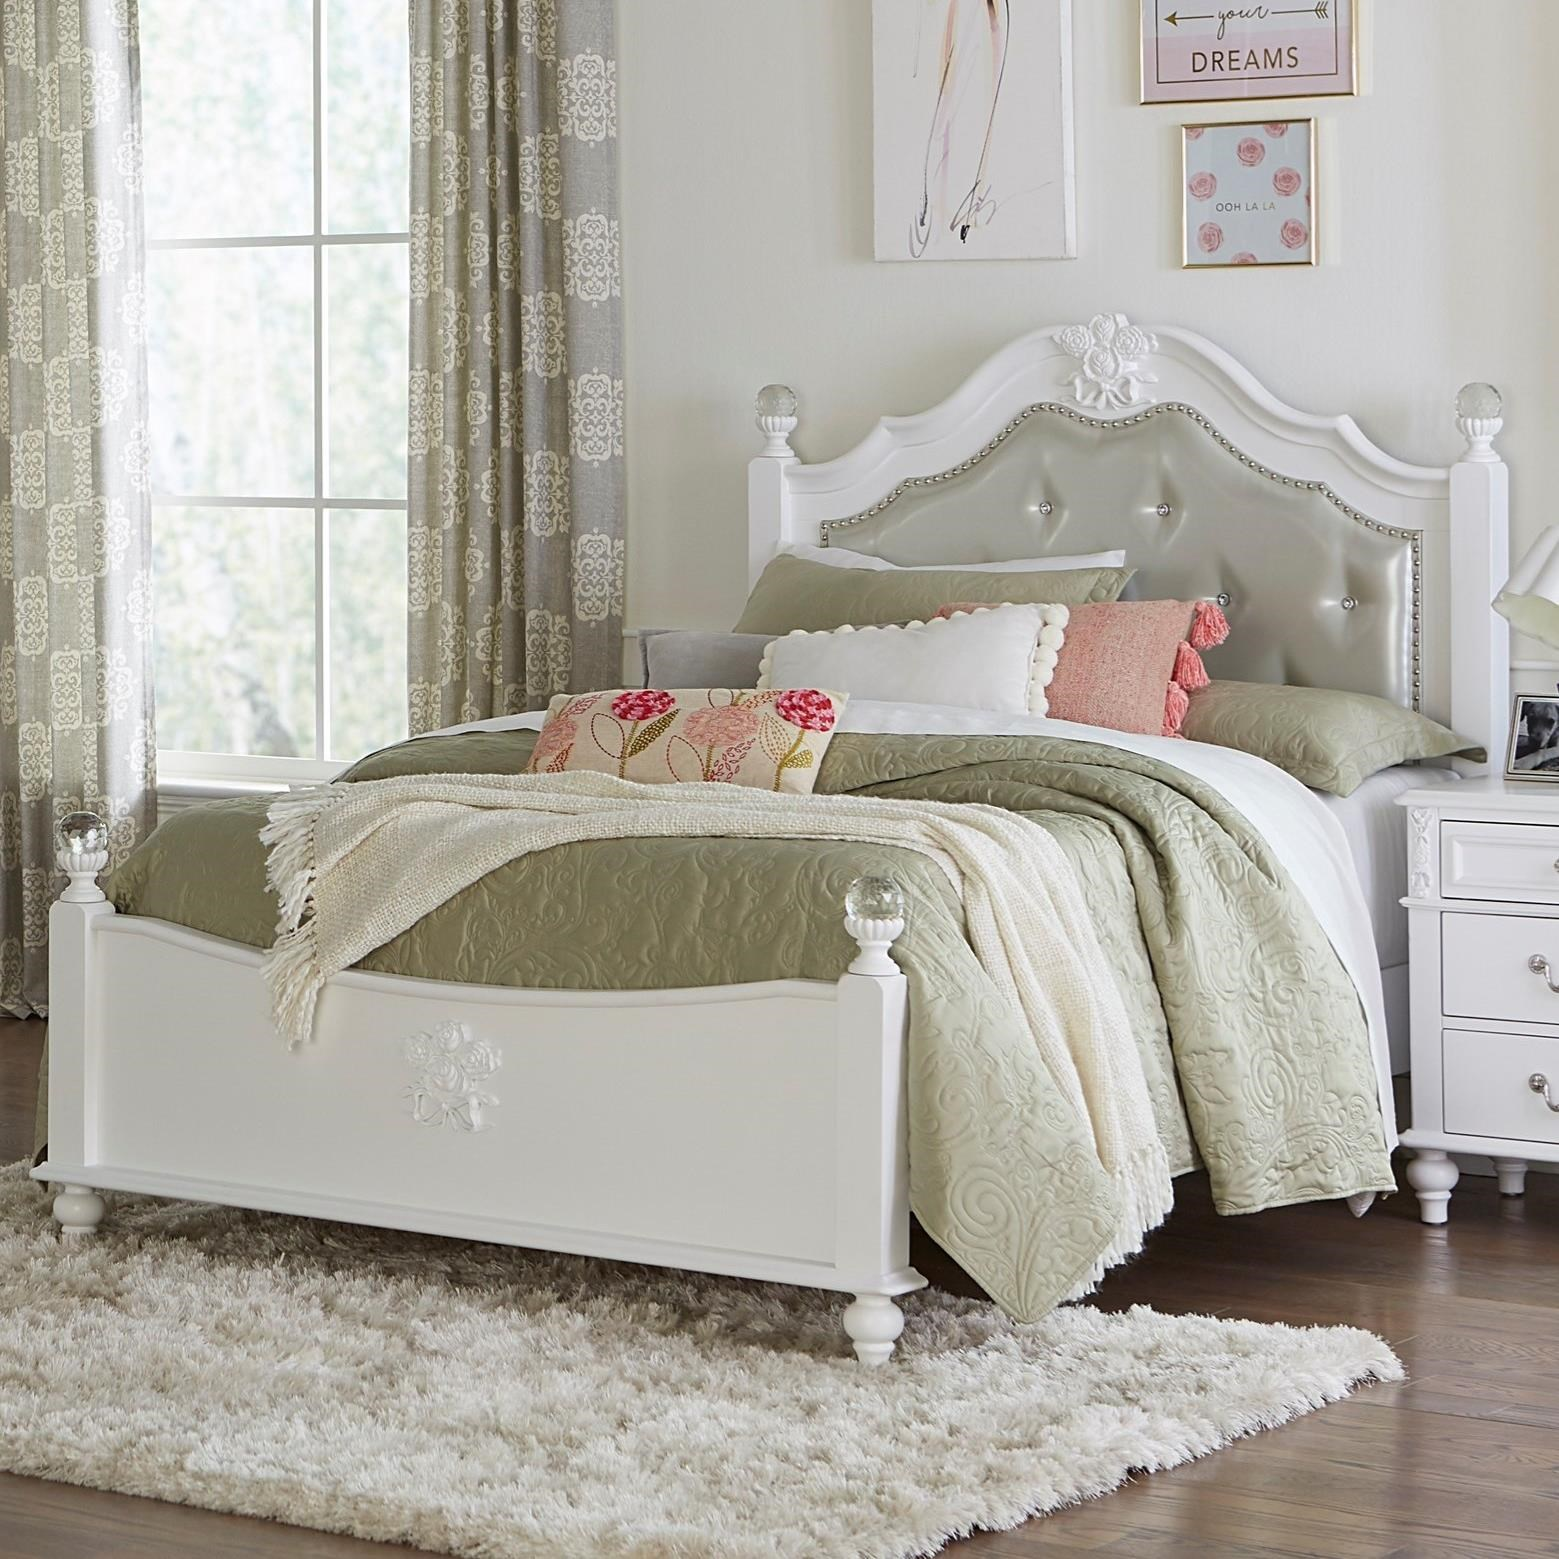 8446A Twin Bed by Lifestyle at Furniture Fair - North Carolina